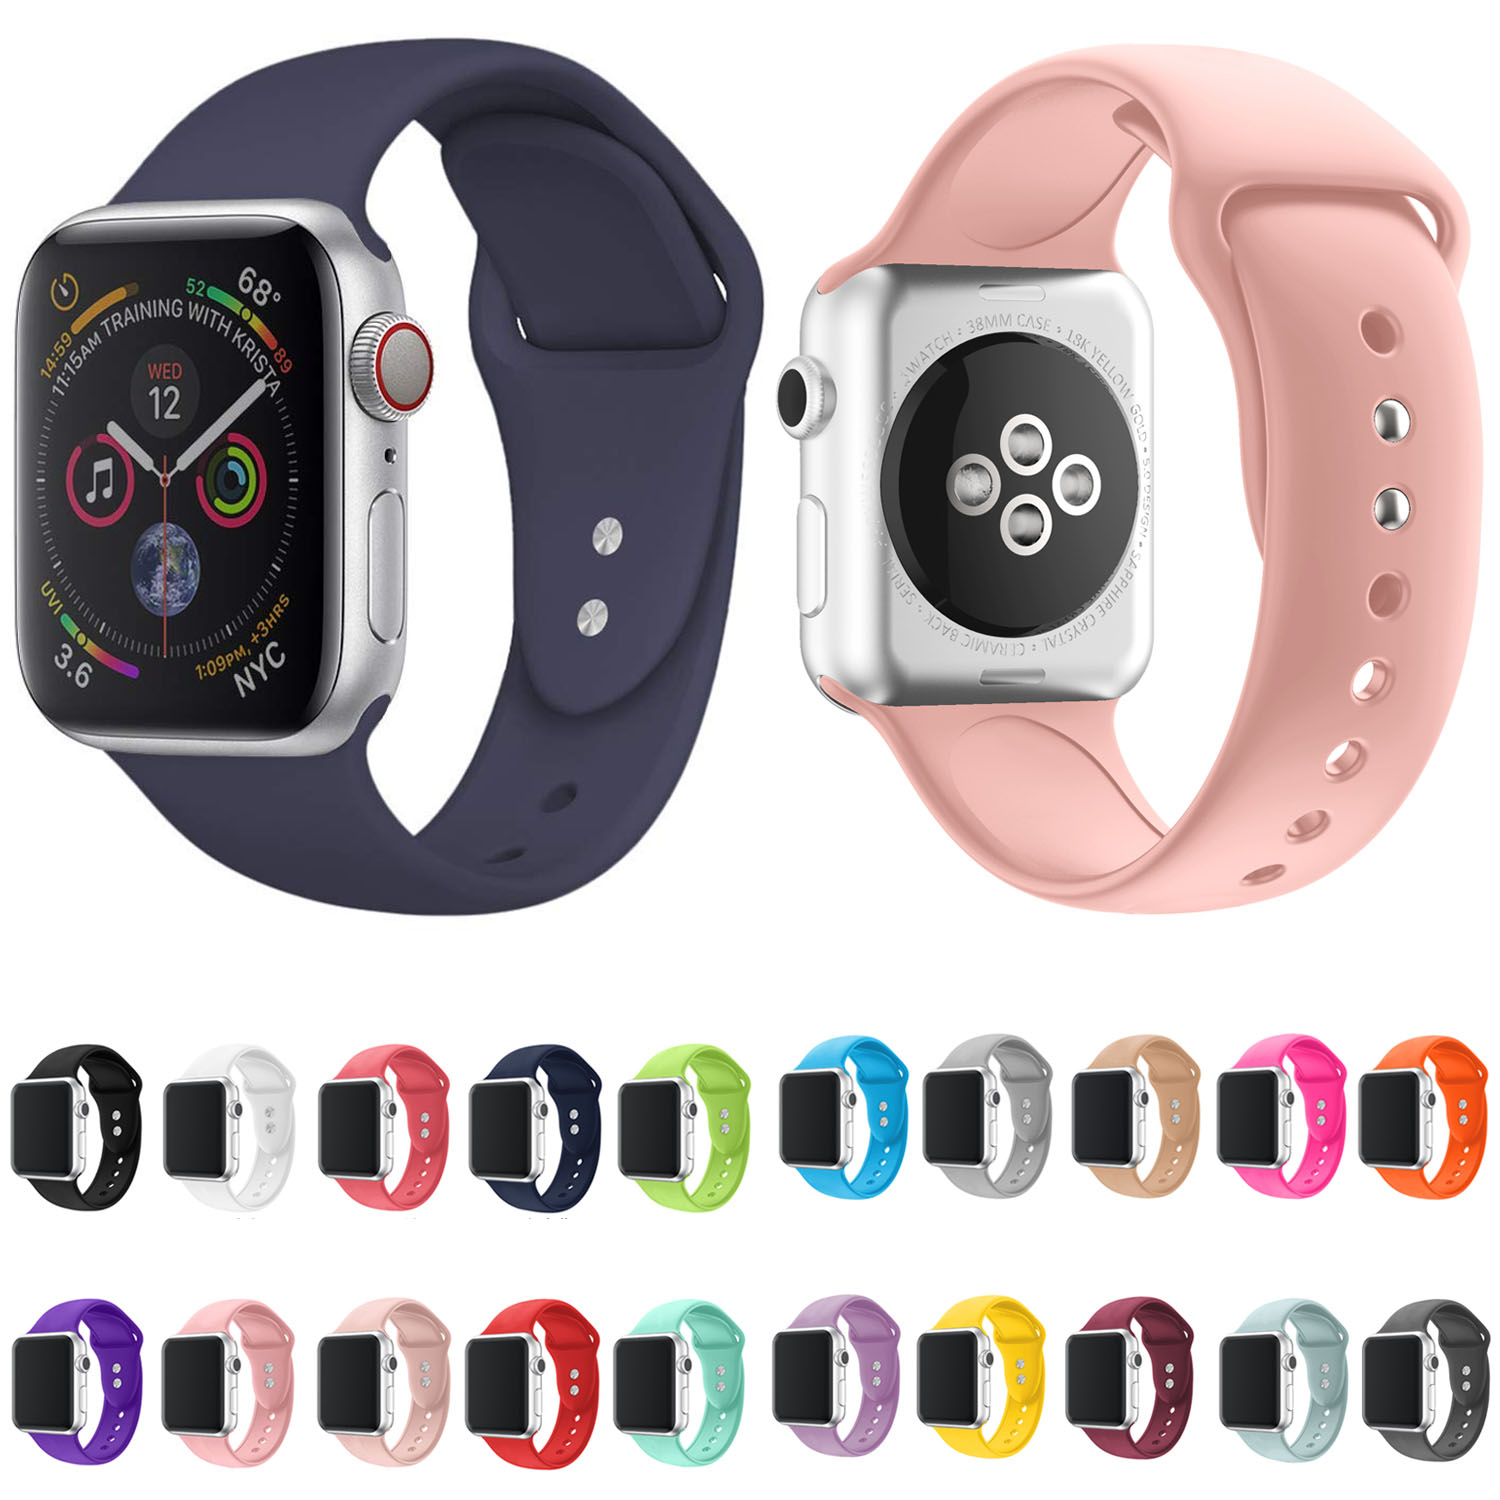 Silicone Band For Apple Watch Series 4 5 3 2 1 Replacement Sport Strap Rubber Wristband For IWatch 38mm 42mm Watchband 40mm 44mm